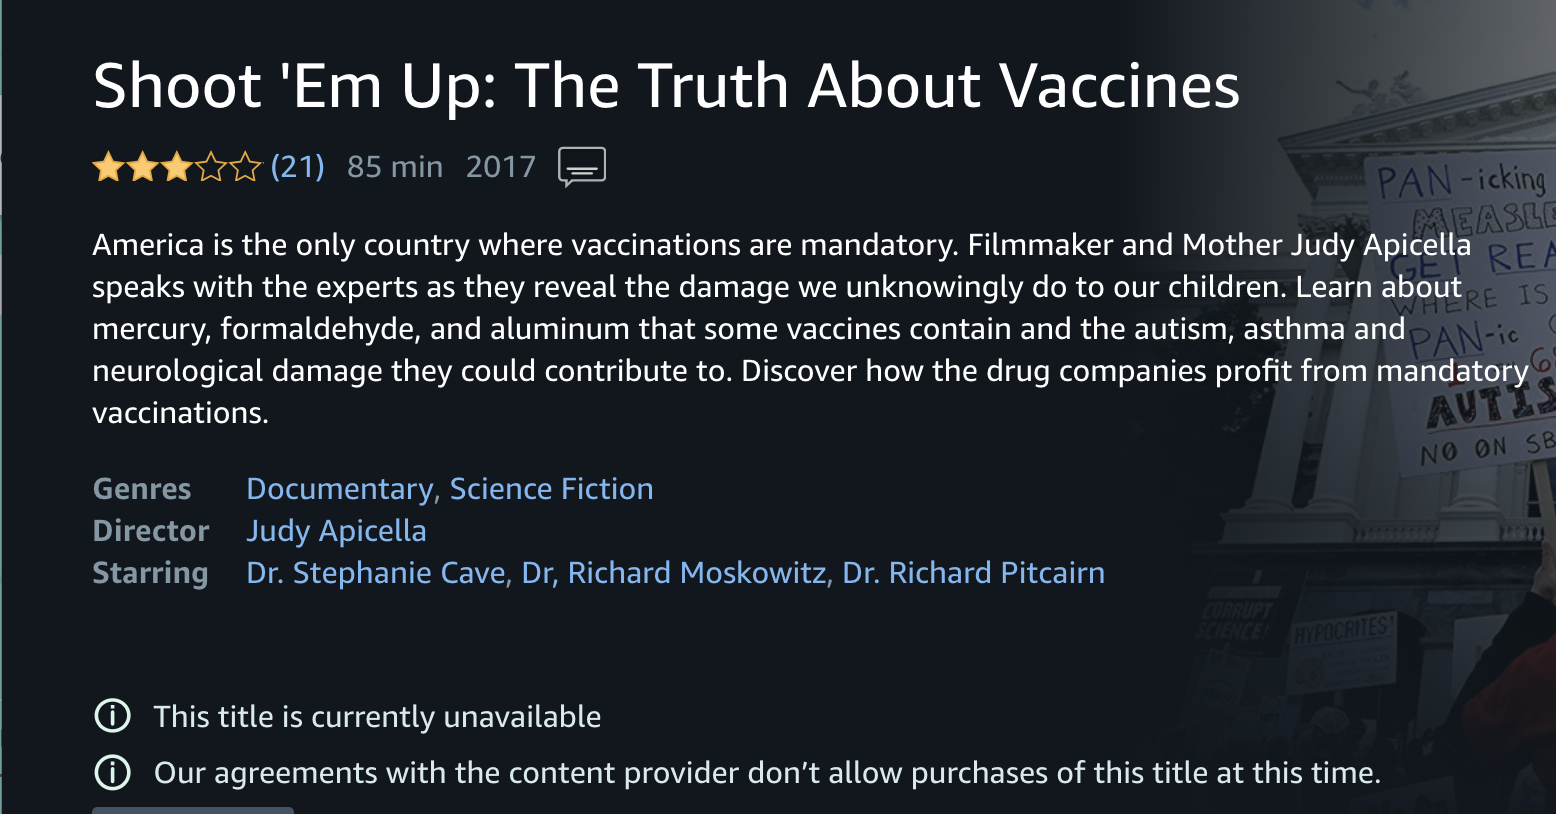 Read This Truth About Vaccines >> Amazon Removed Anti Vax Videos After An Angry Letter From Us Rep